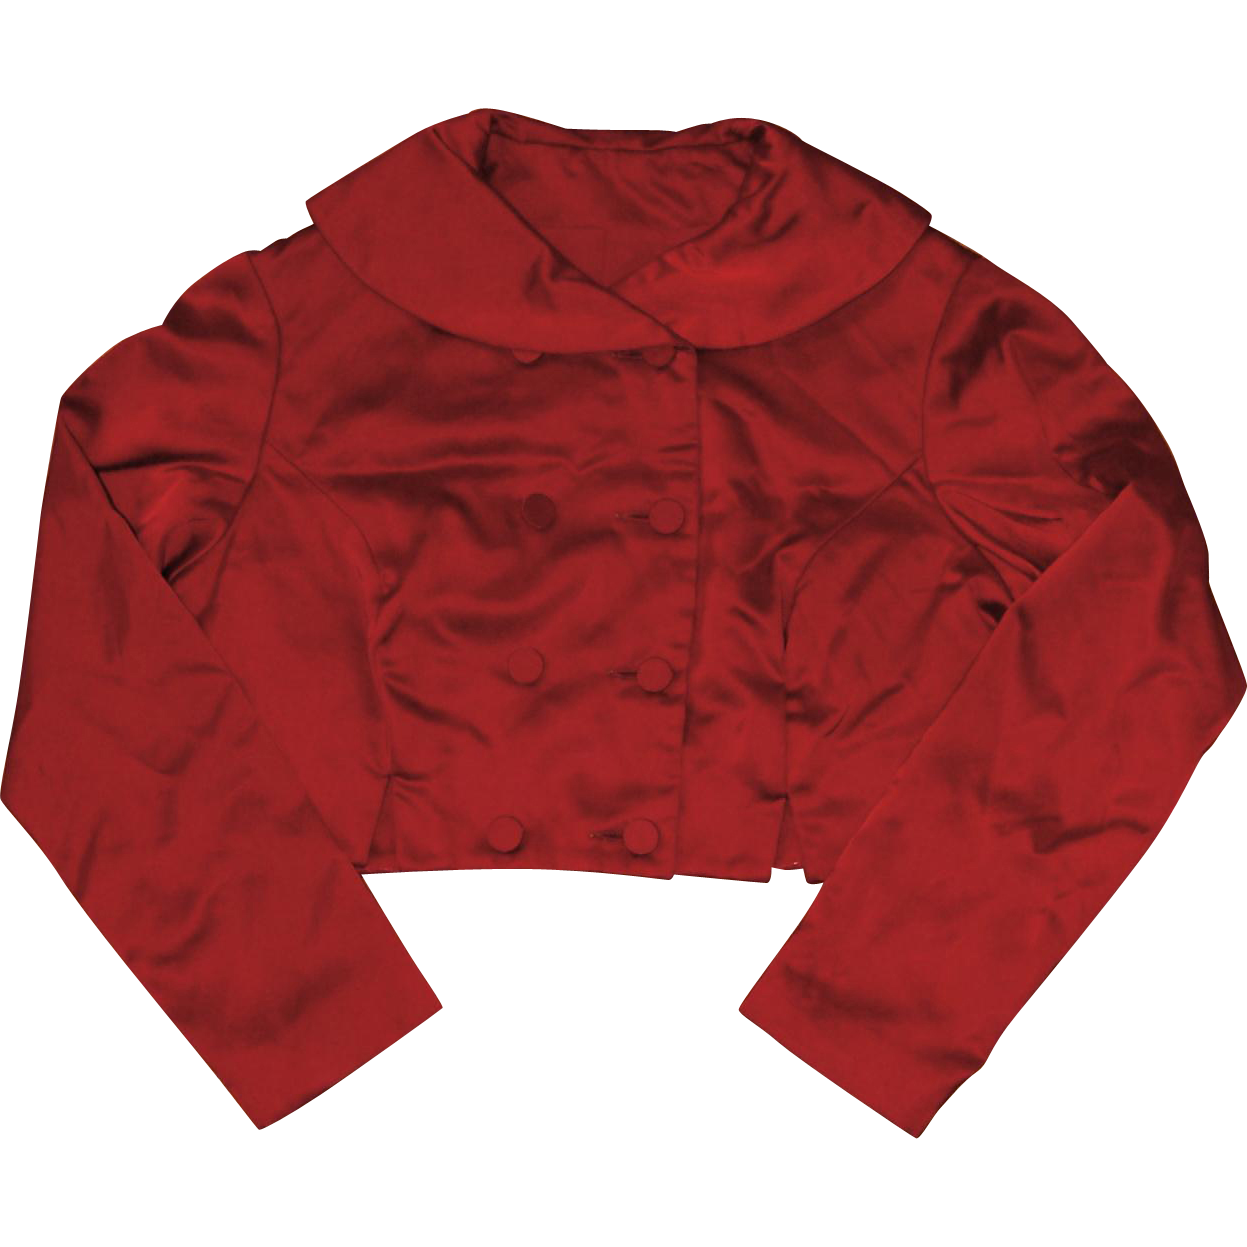 You searched for: red satin coat! Etsy is the home to thousands of handmade, vintage, and one-of-a-kind products and gifts related to your search. No matter what you're looking for or where you are in the world, our global marketplace of sellers can help you find unique and affordable options. Let's get started!